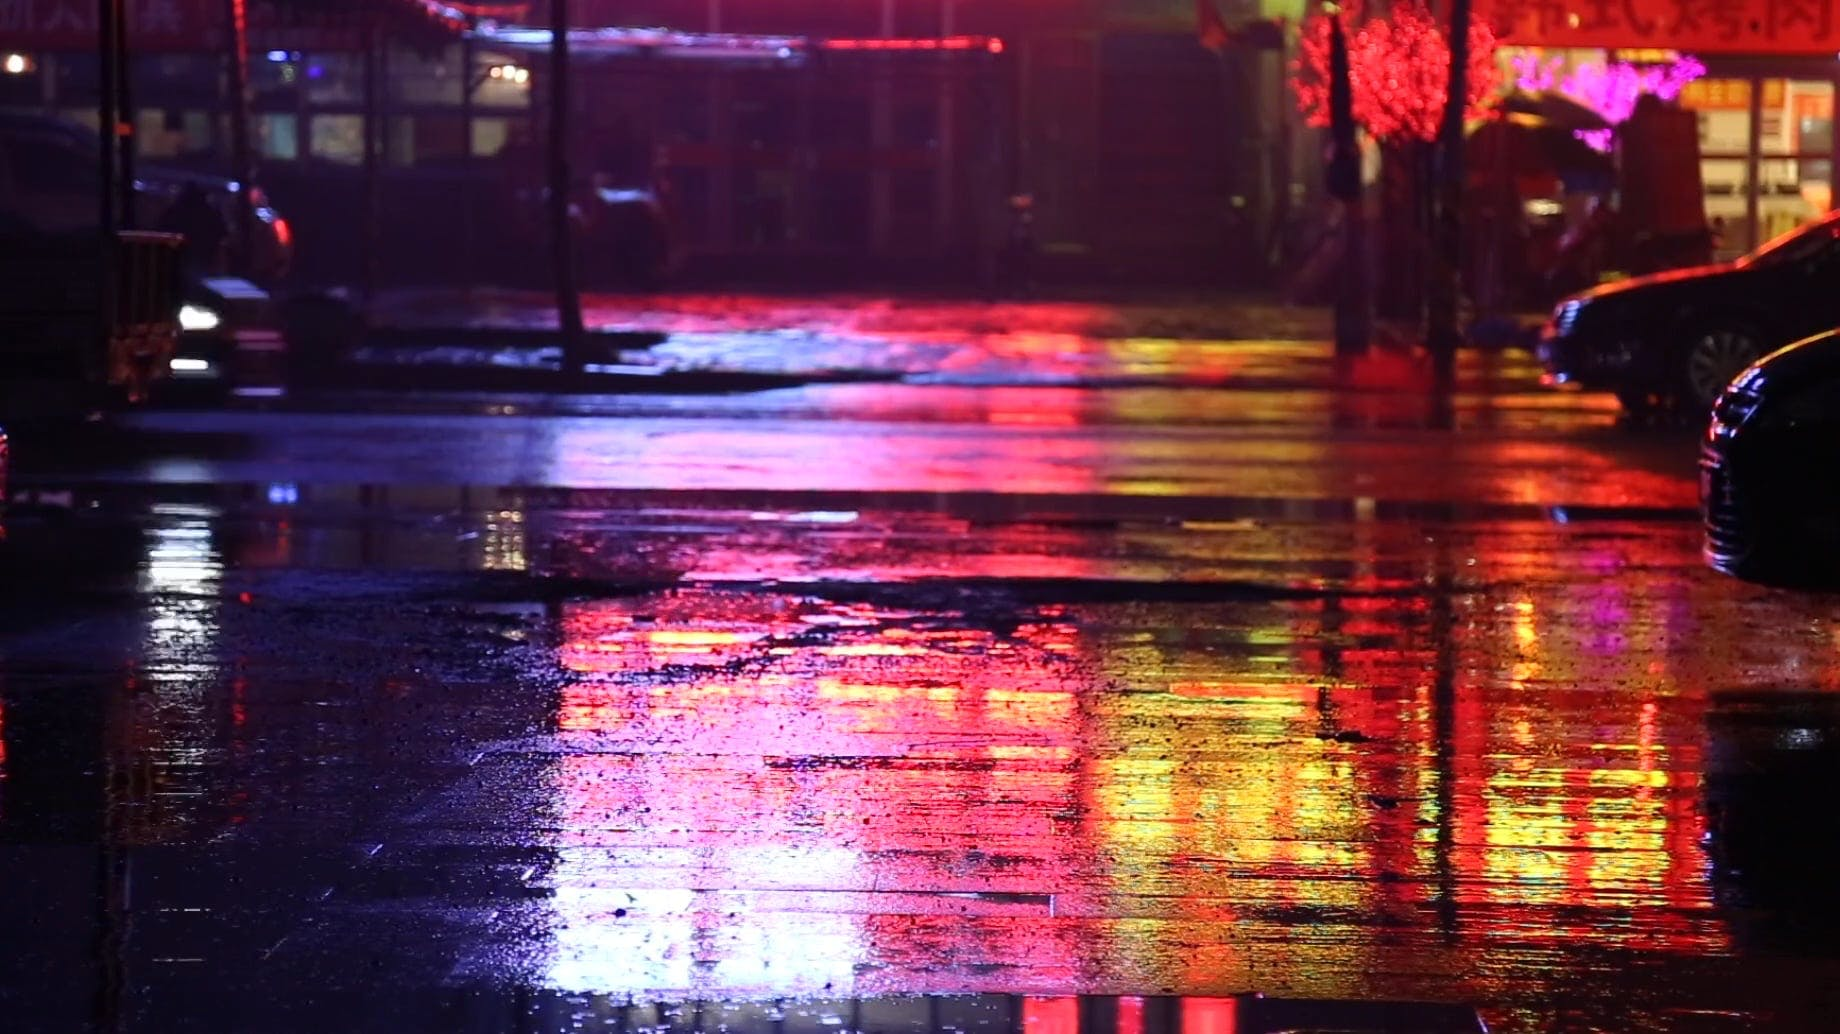 Video Of People Waiting For A Taxi On A Rainy Night